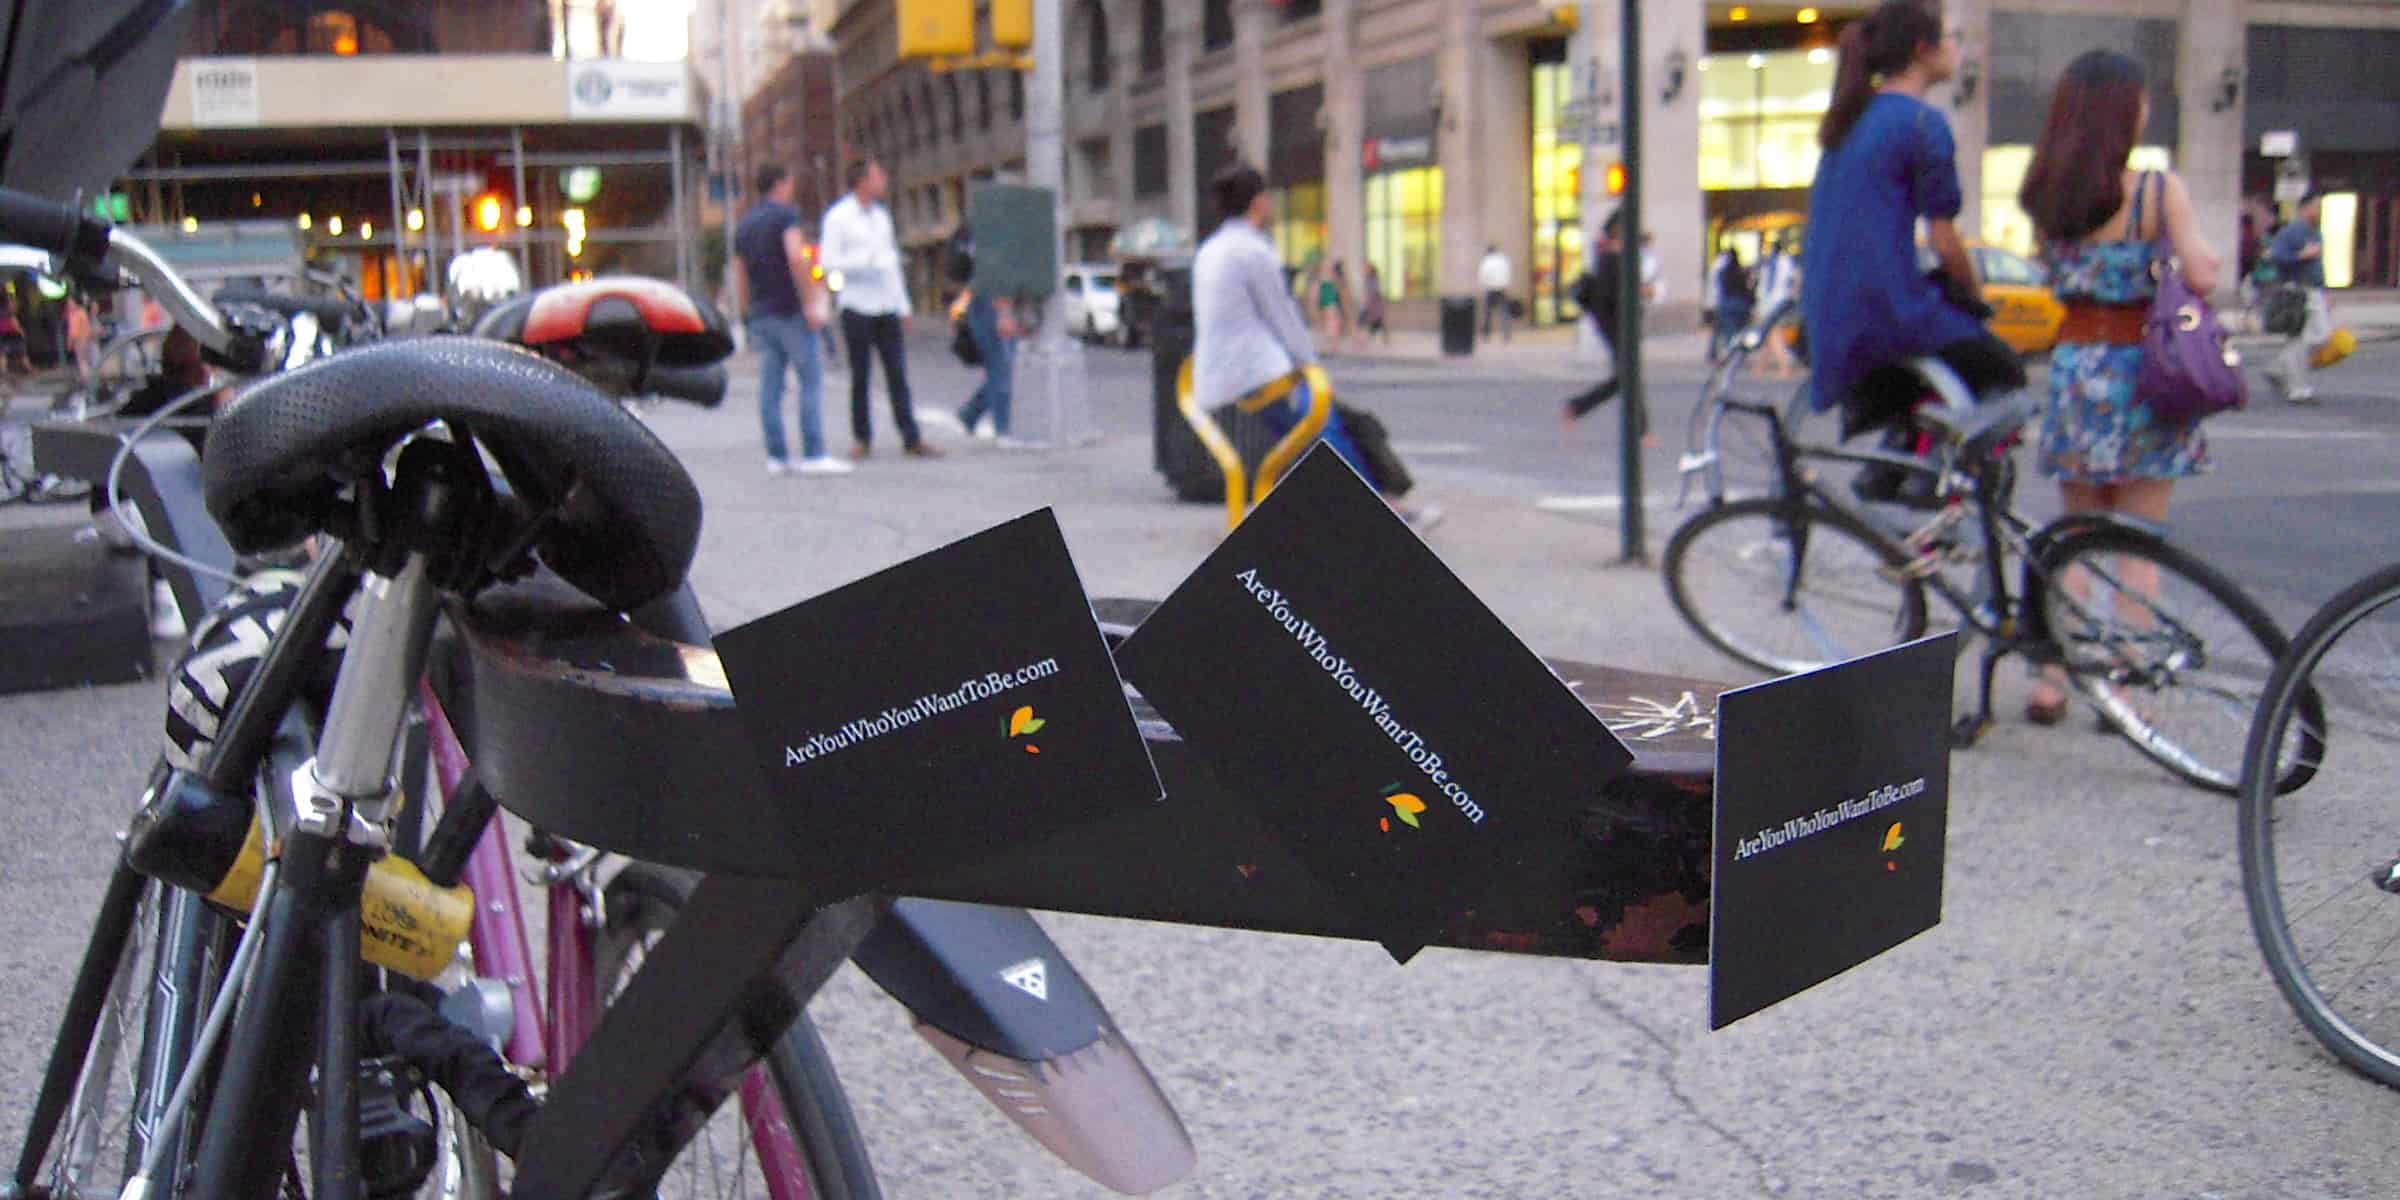 Guerilla Marketing Magnets Advertising NYC